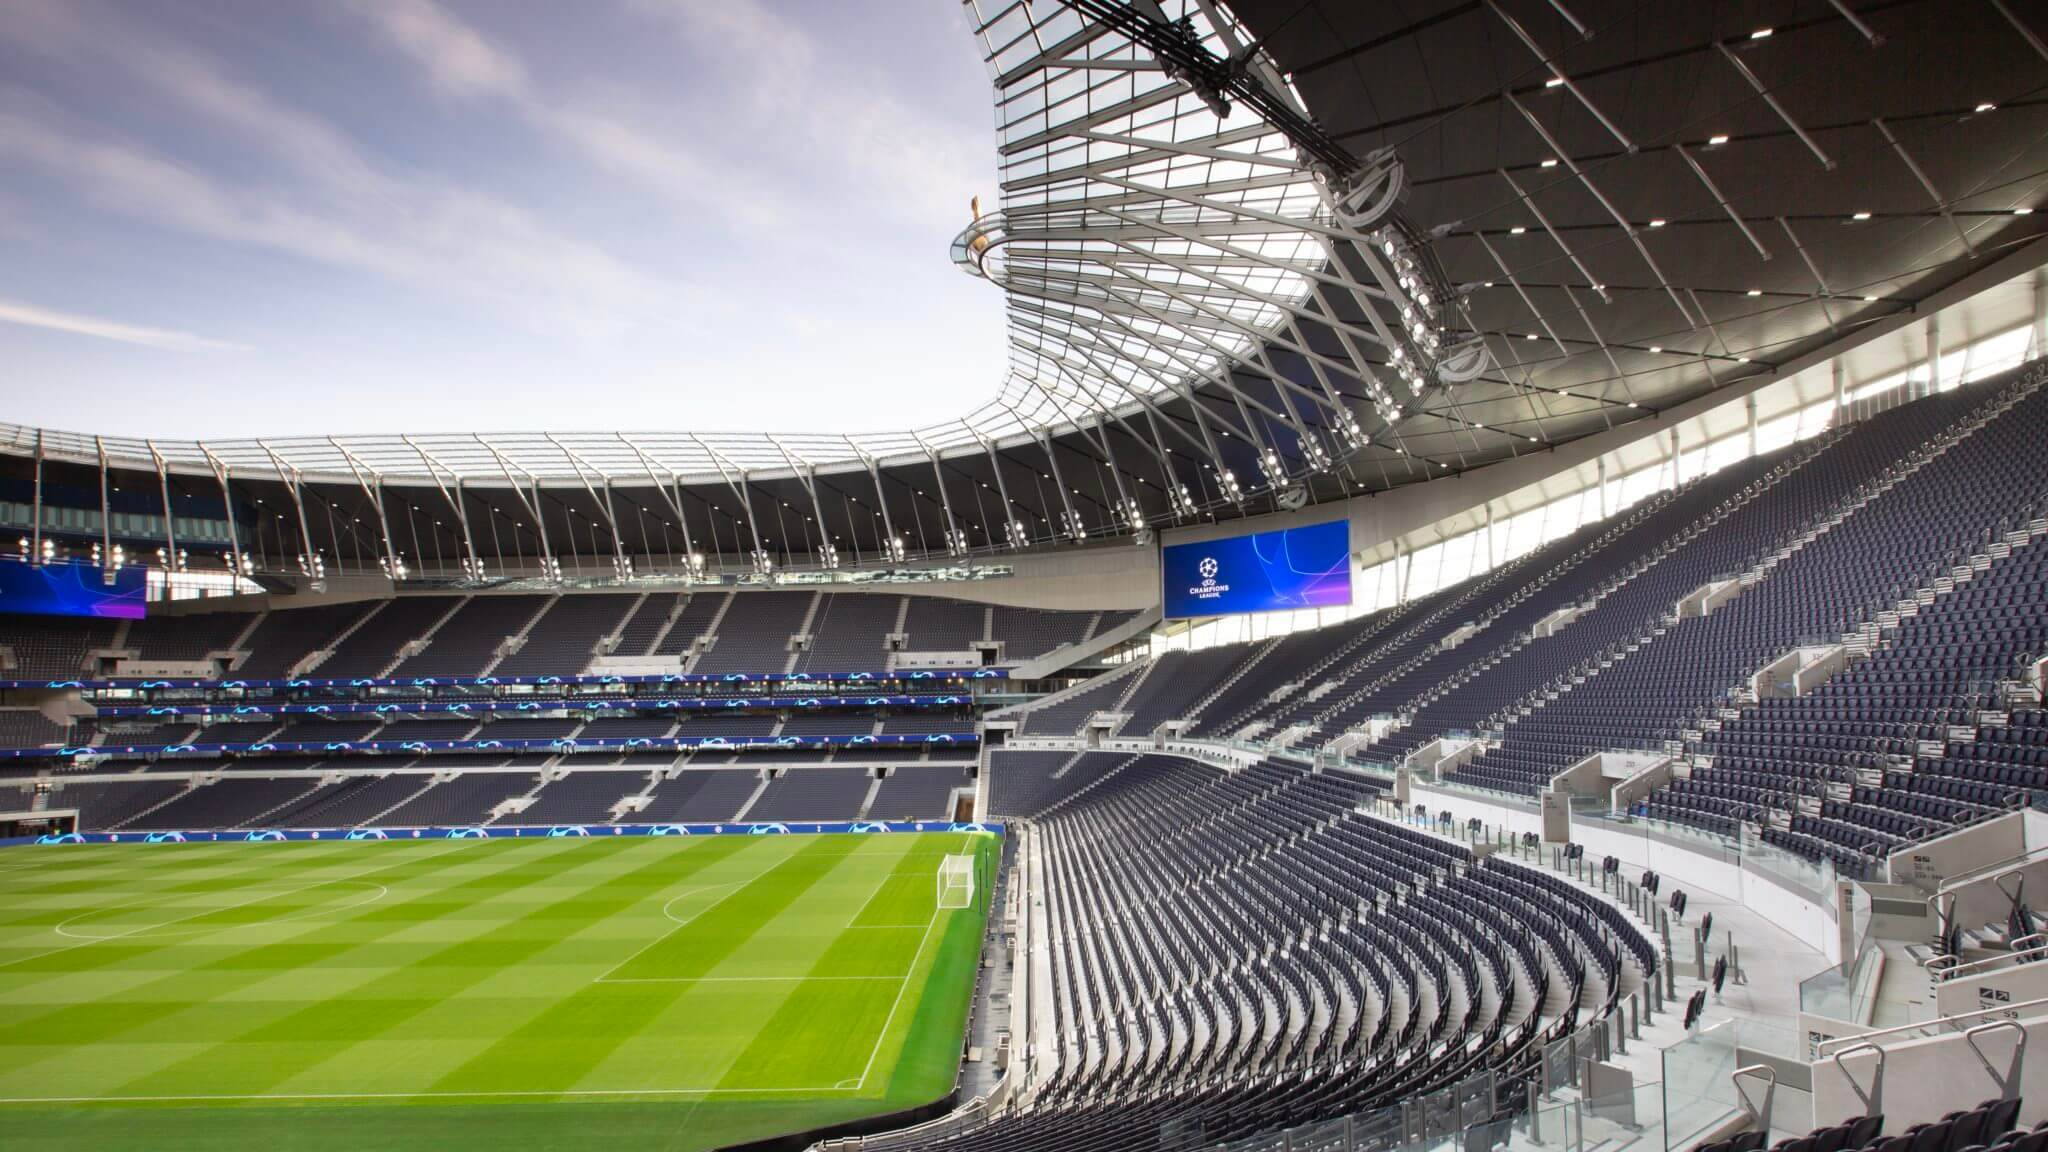 Tottenham Hotspur Stadium Hd Wallpaper Hd Football